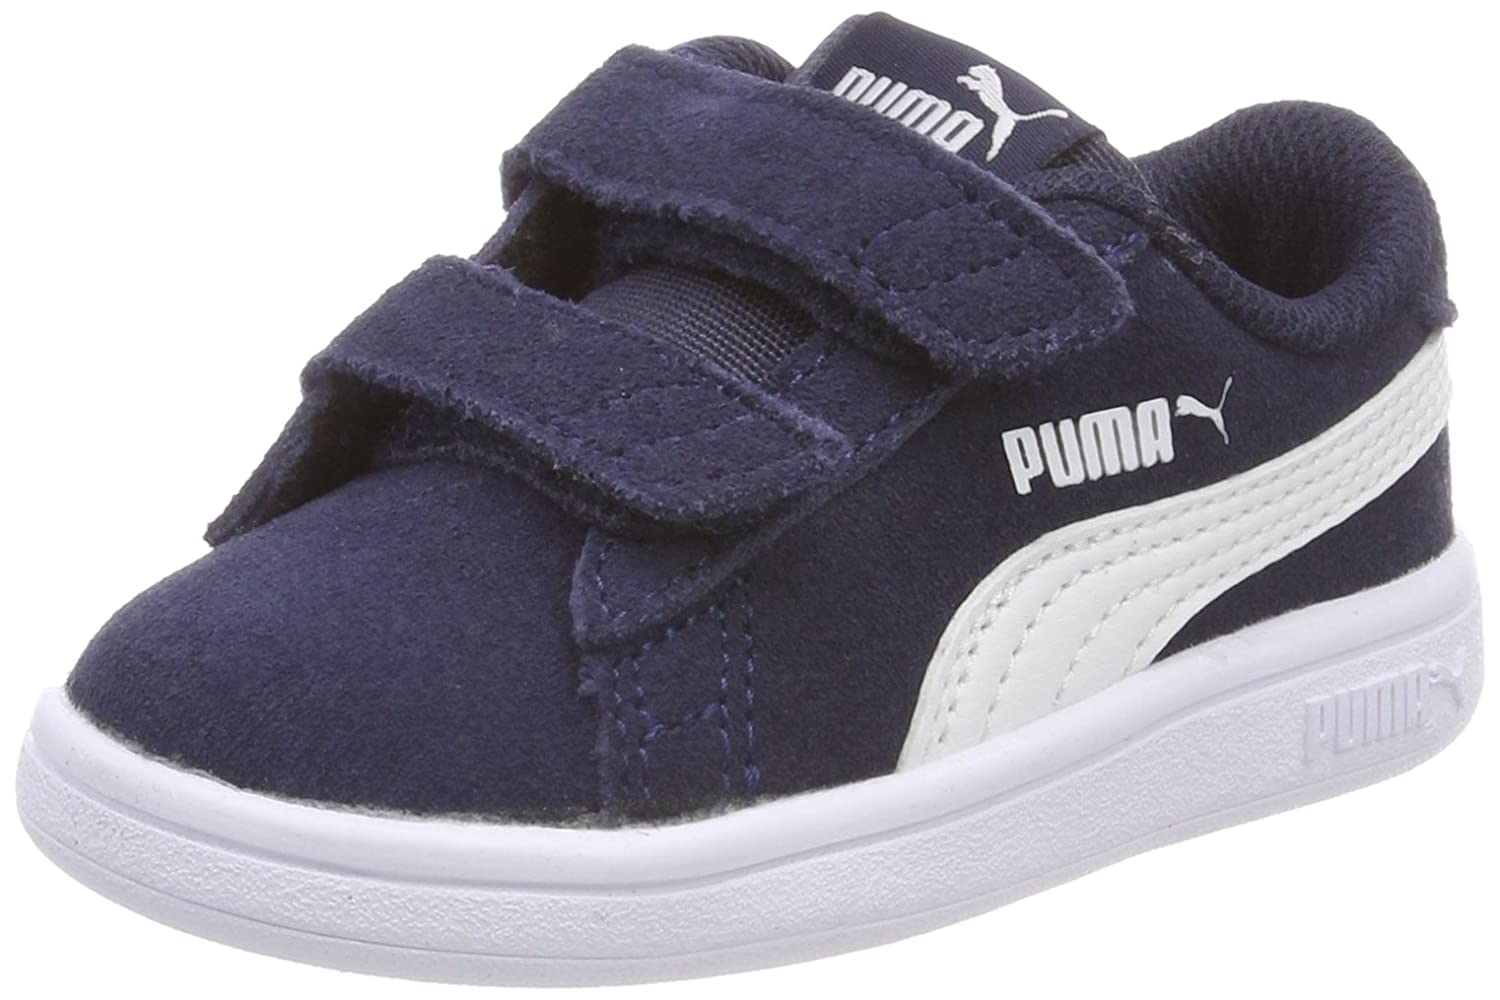 Puma Smash V2 SD V Inf, Sneakers Basses Mixte bébé